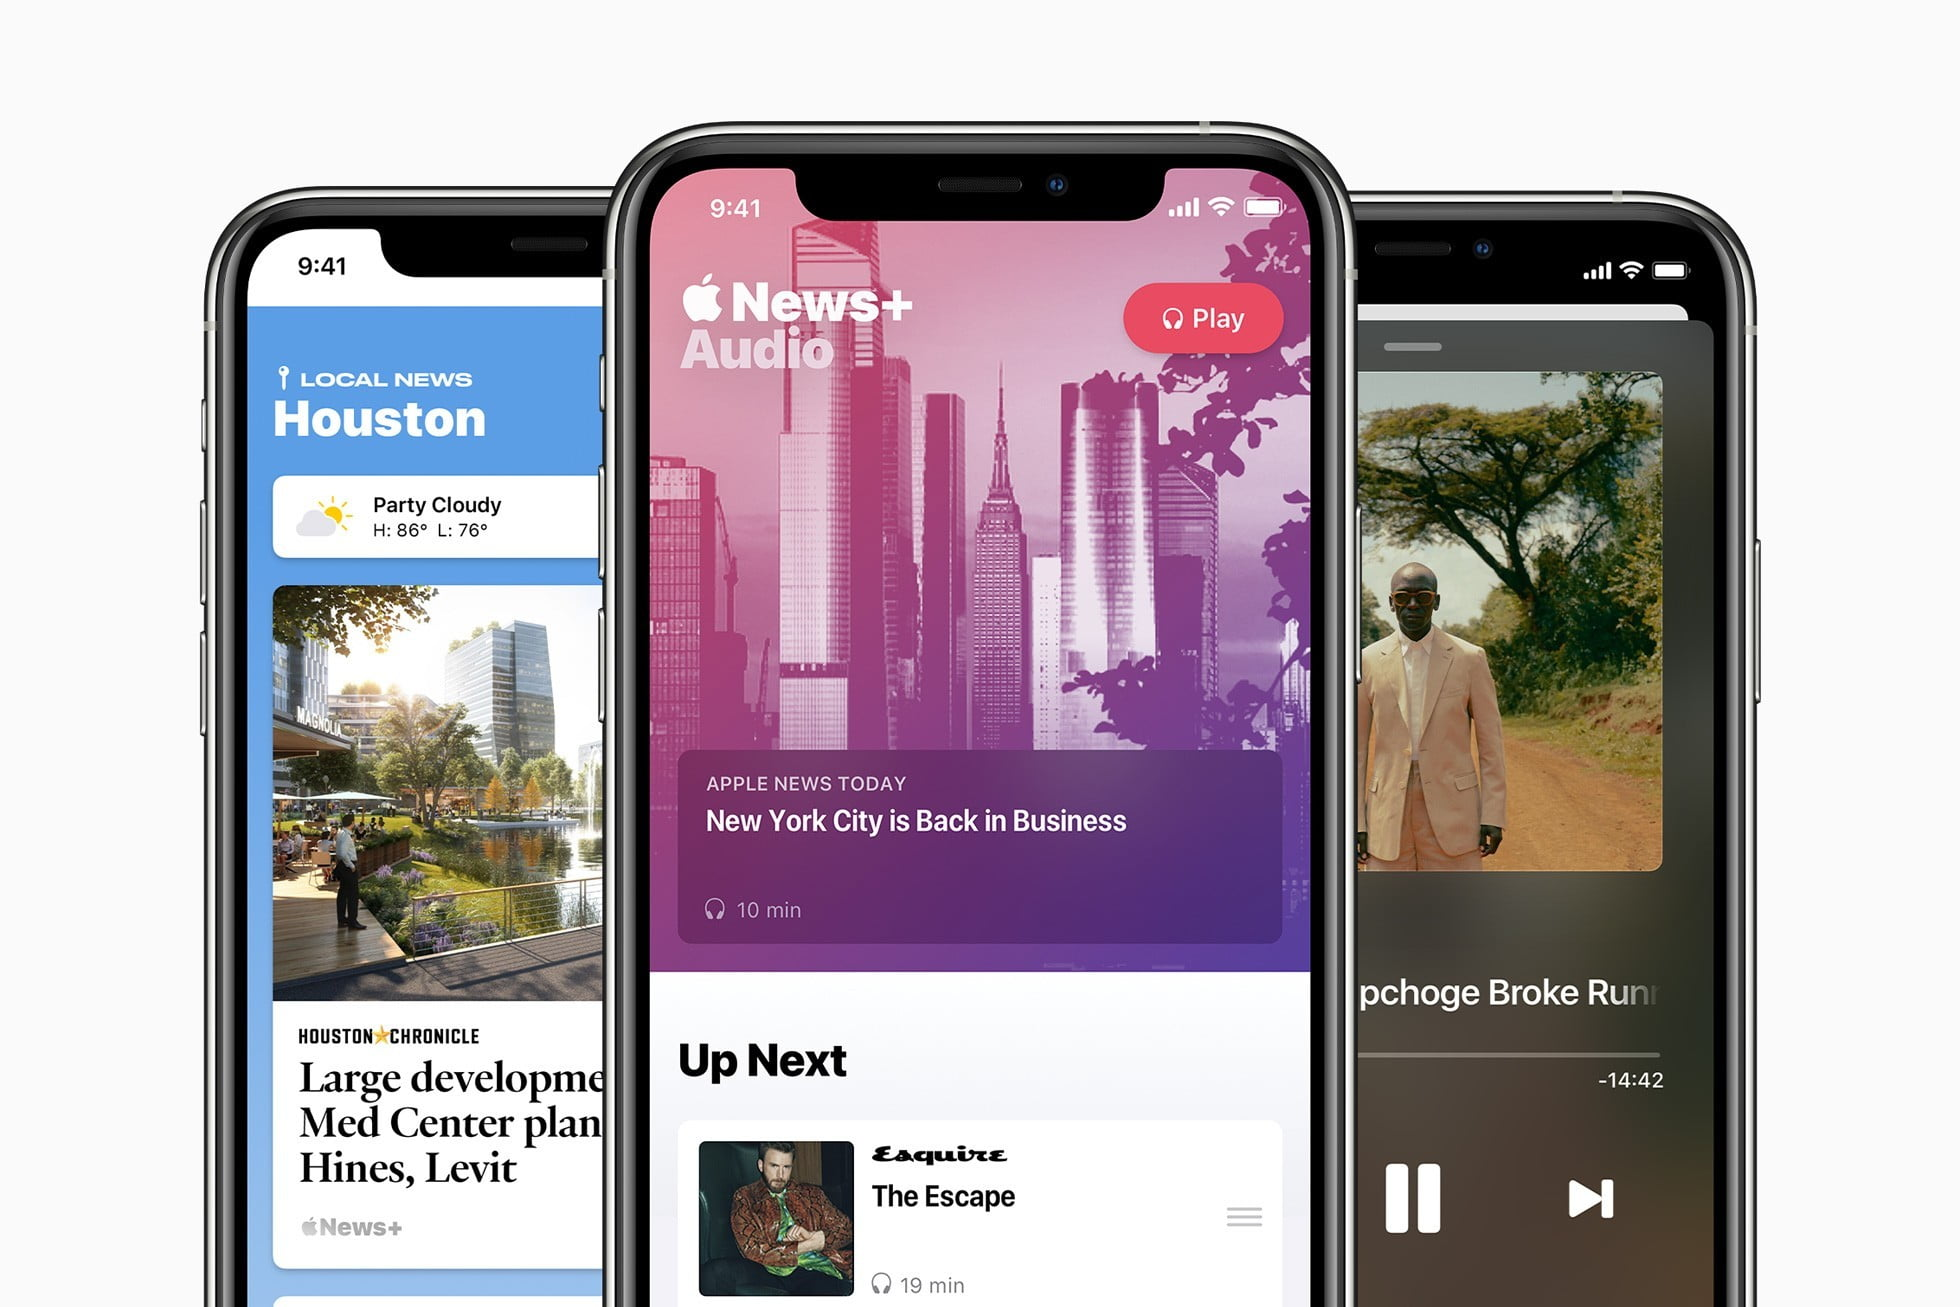 iOS 13.6 is now out. Here are the newest features